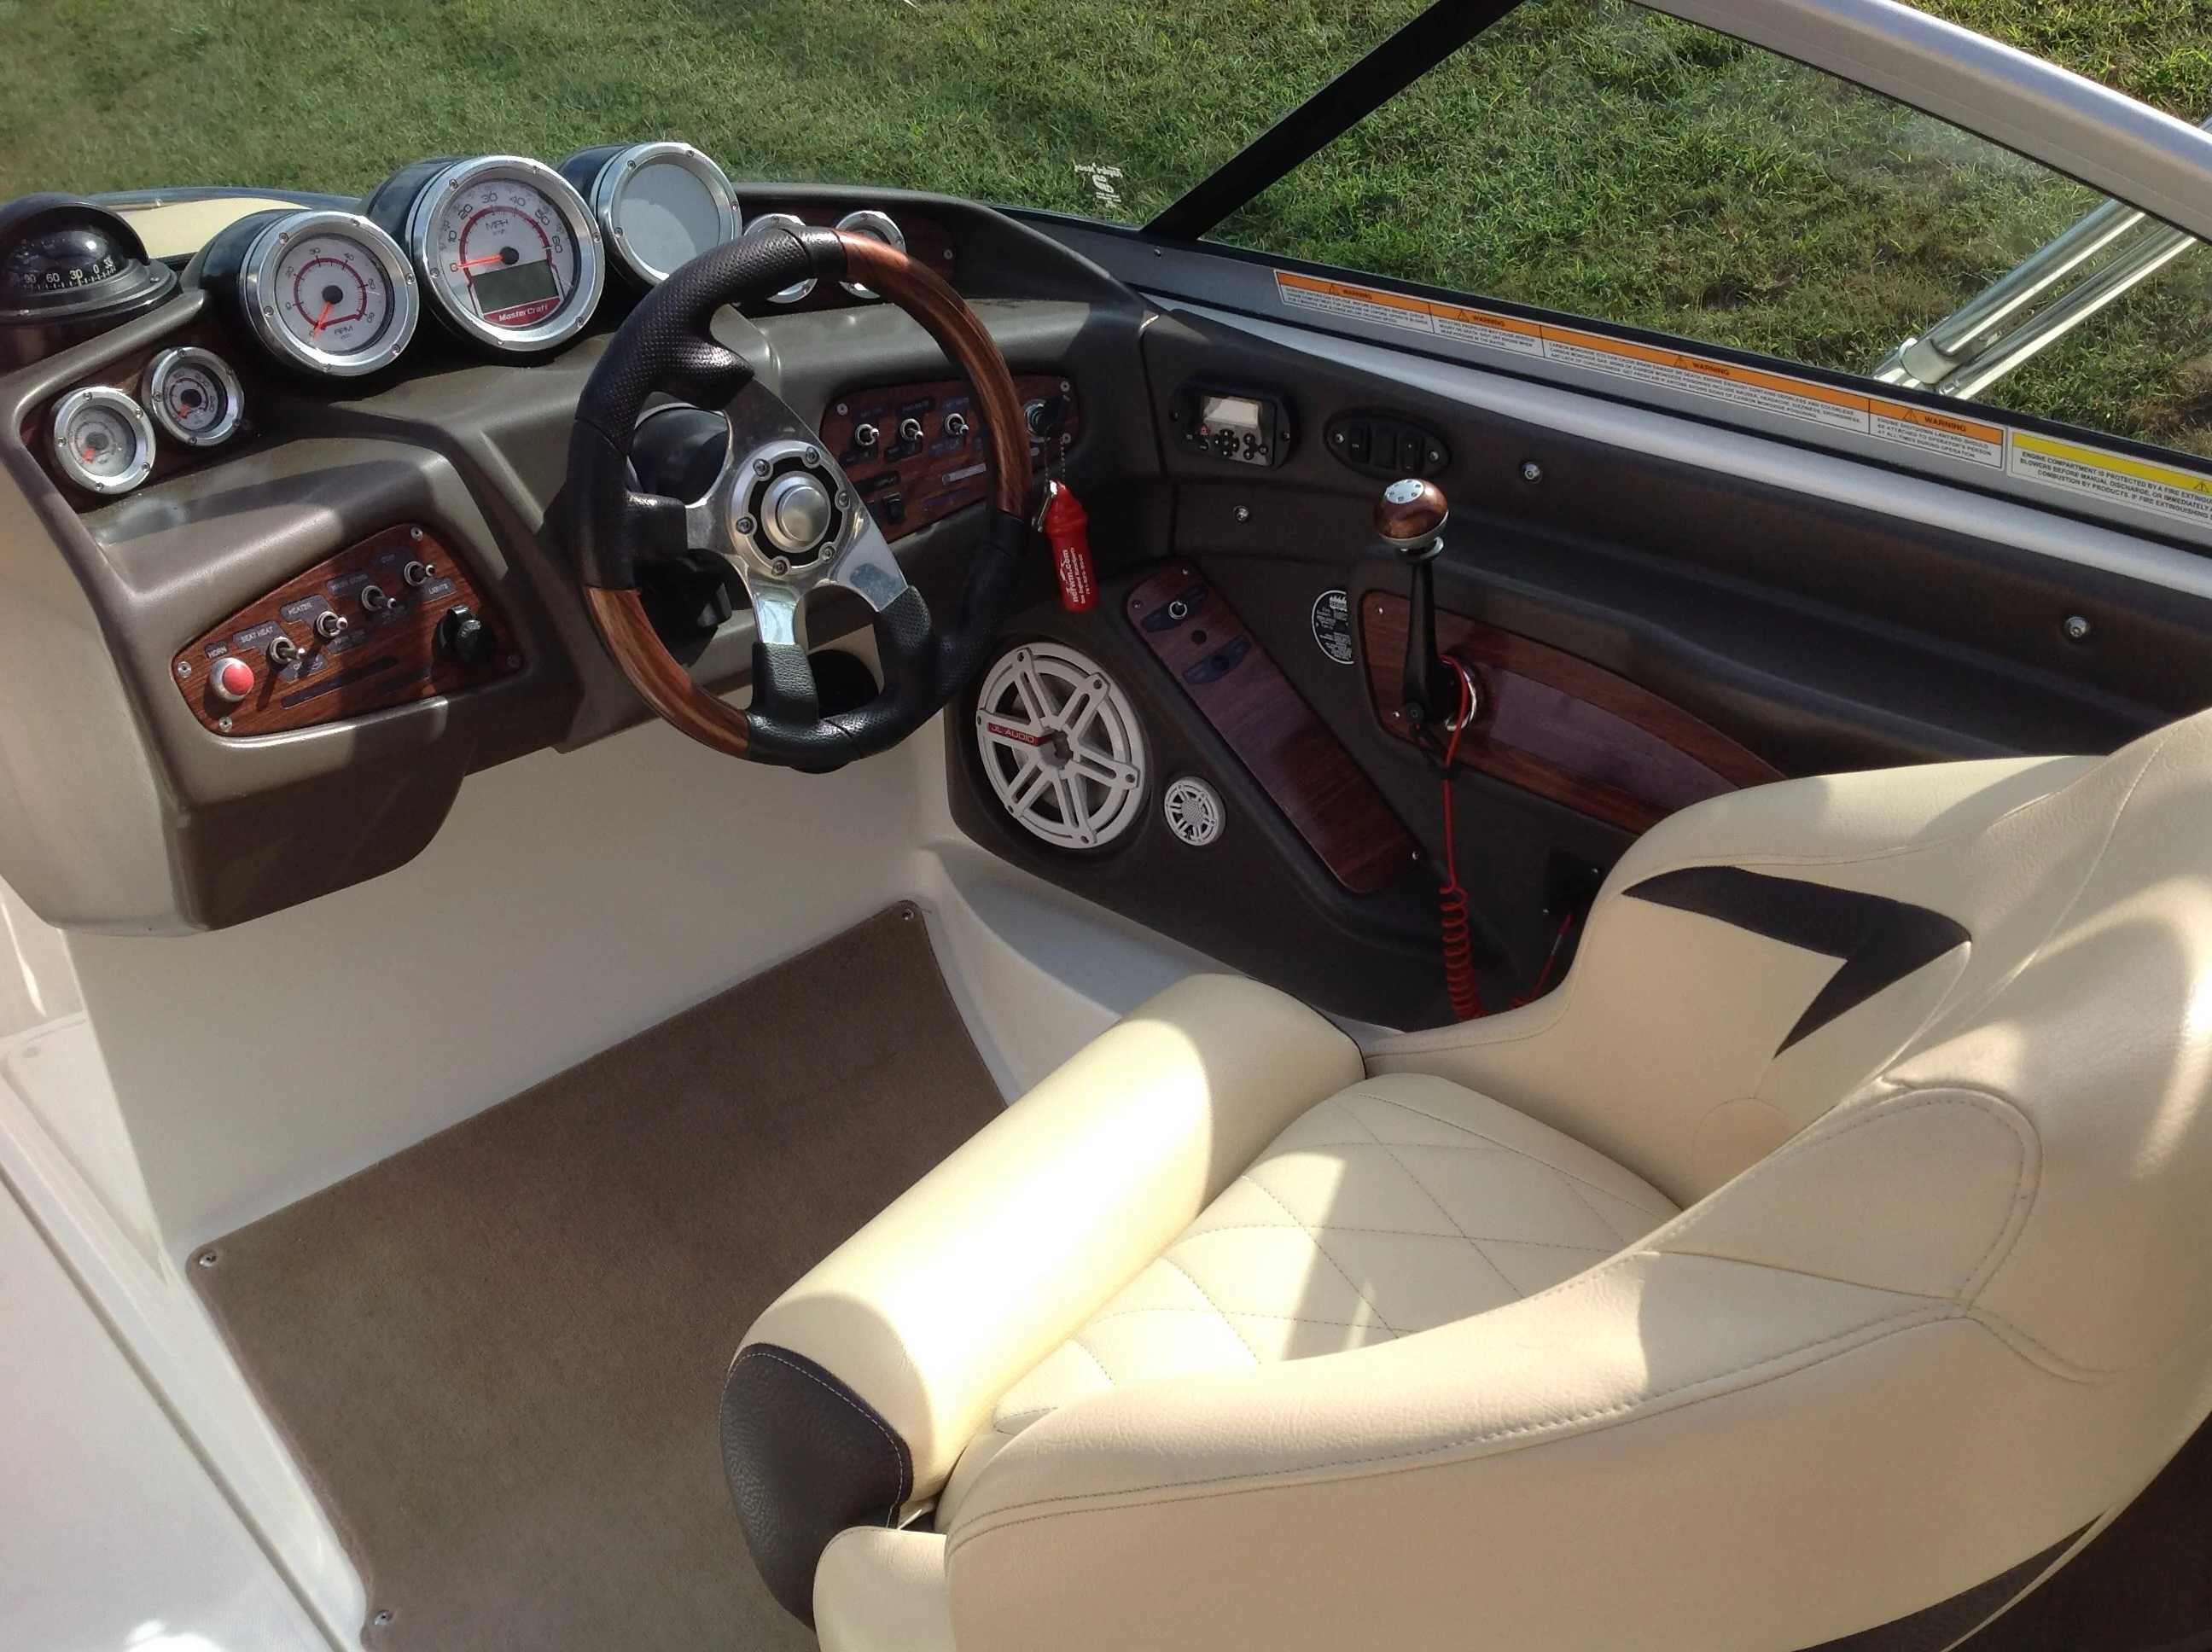 2010 Mastercraft boat for sale, model of the boat is Maristar 235 & Image # 6 of 16